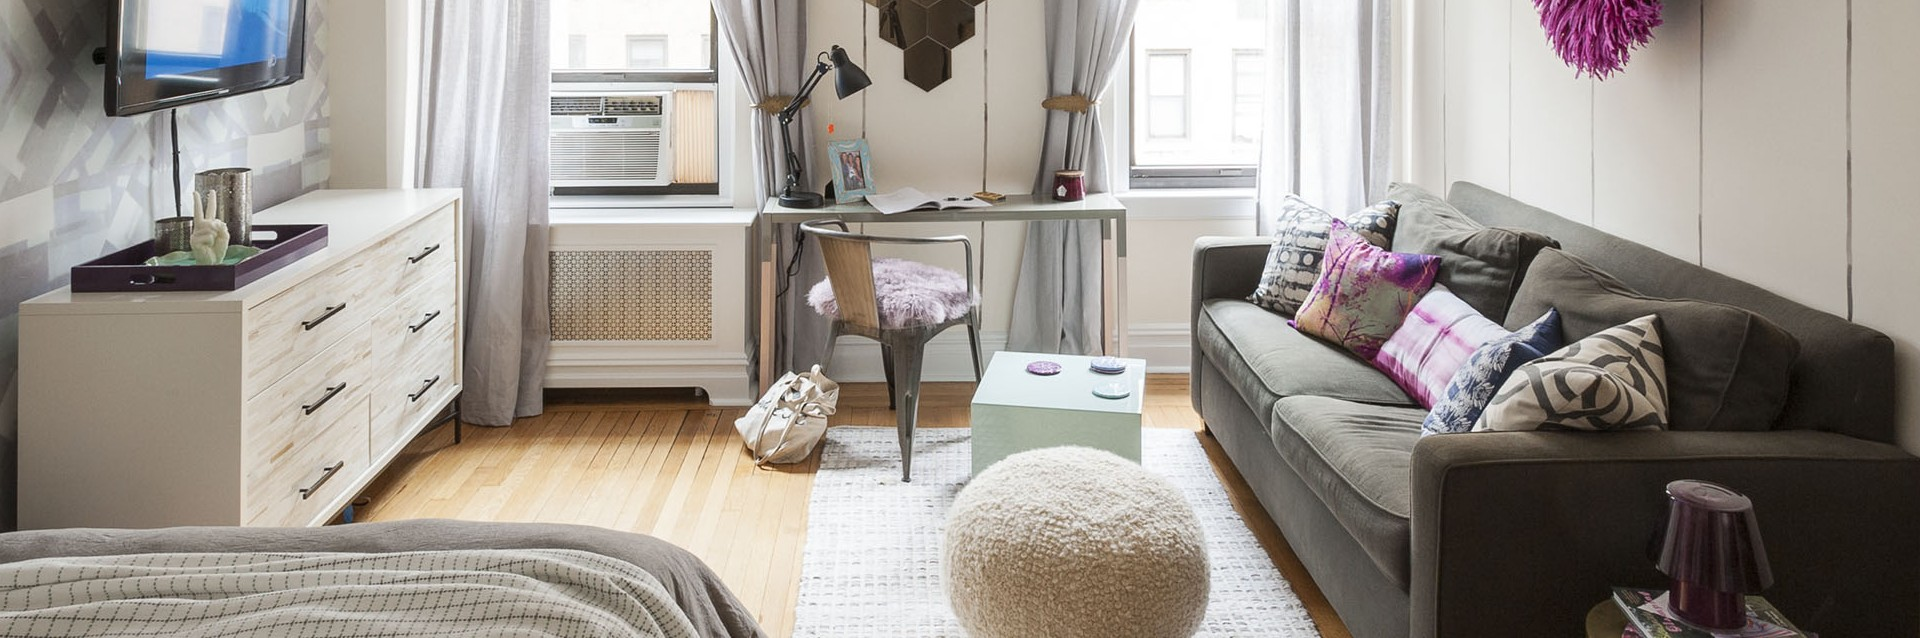 Living Room Ideas For Small Apartments Nice For Living Room Decor Ideas  With Living Room Ideas For Small Apartments Design Inspiration